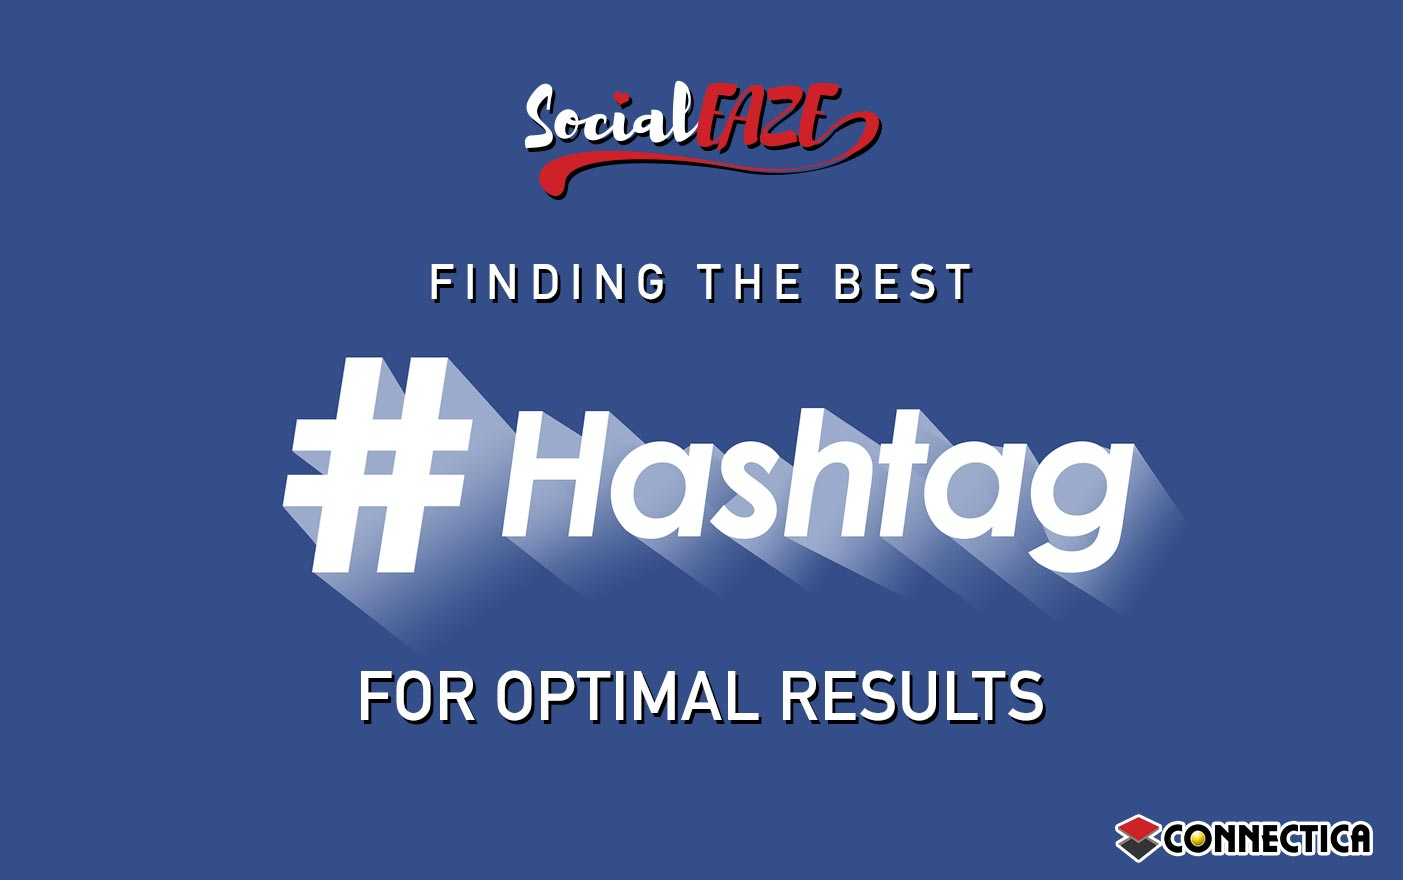 Finding The Best Hashtags